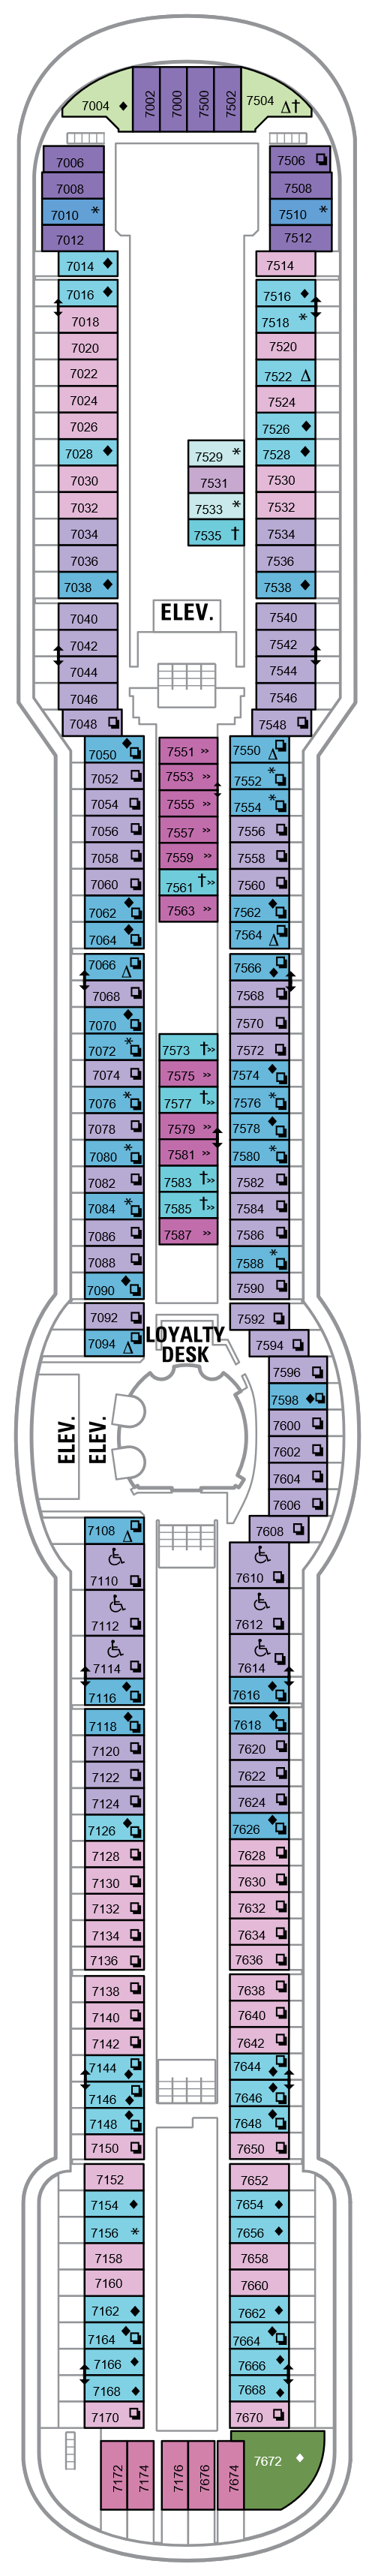 Brilliance Of The Seas Deck 7 layout